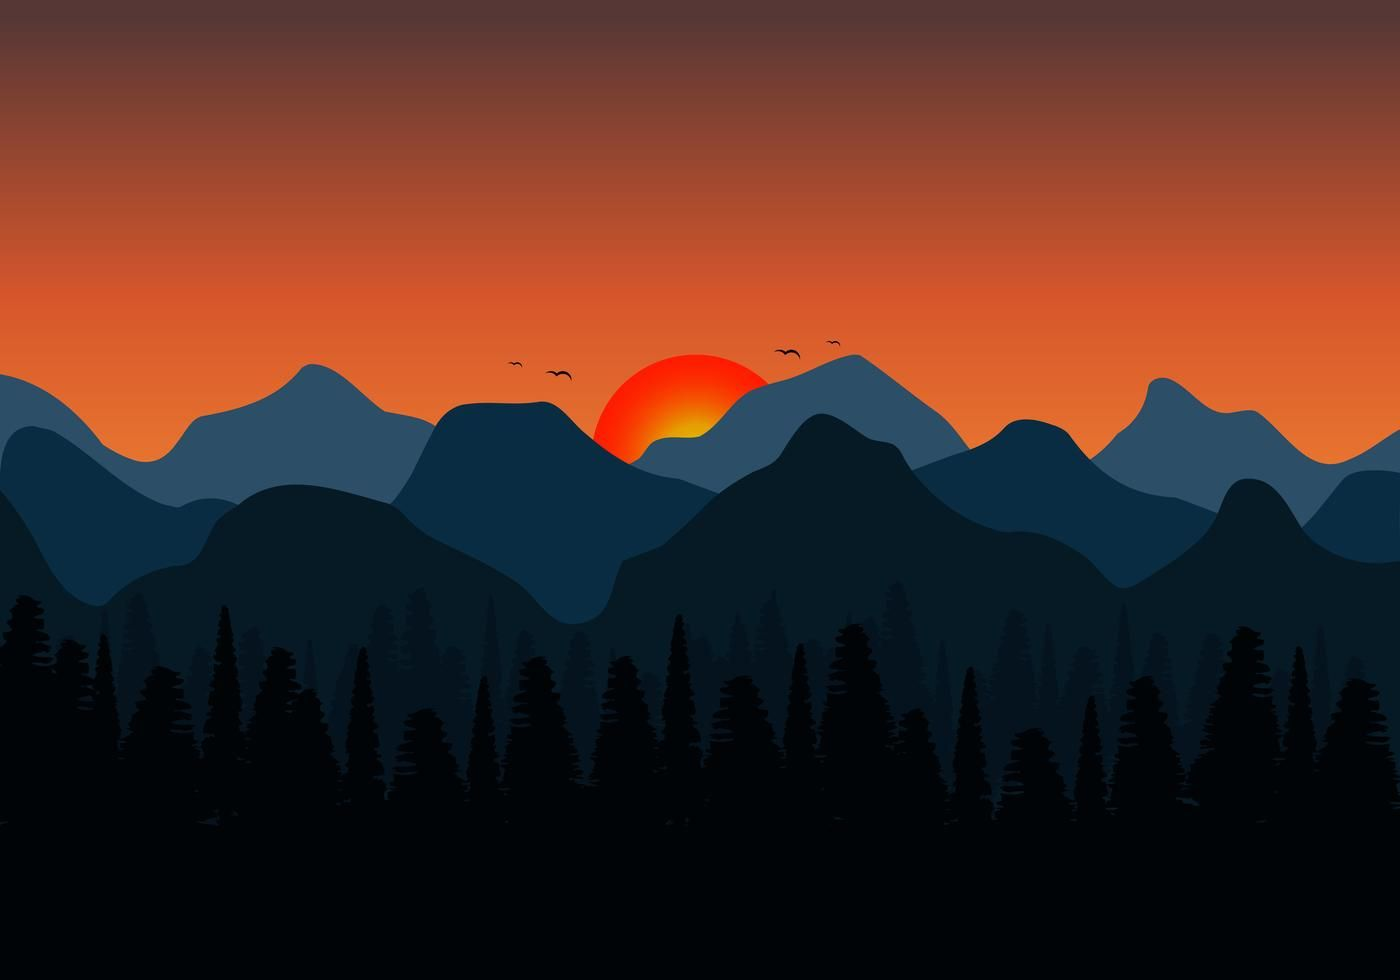 Nature Background Of Mountains Sunset Landscape Background And Silhouette Of Forest By Zenzeta Mou In 2020 Landscape Background Nature Backgrounds Sunset Landscape